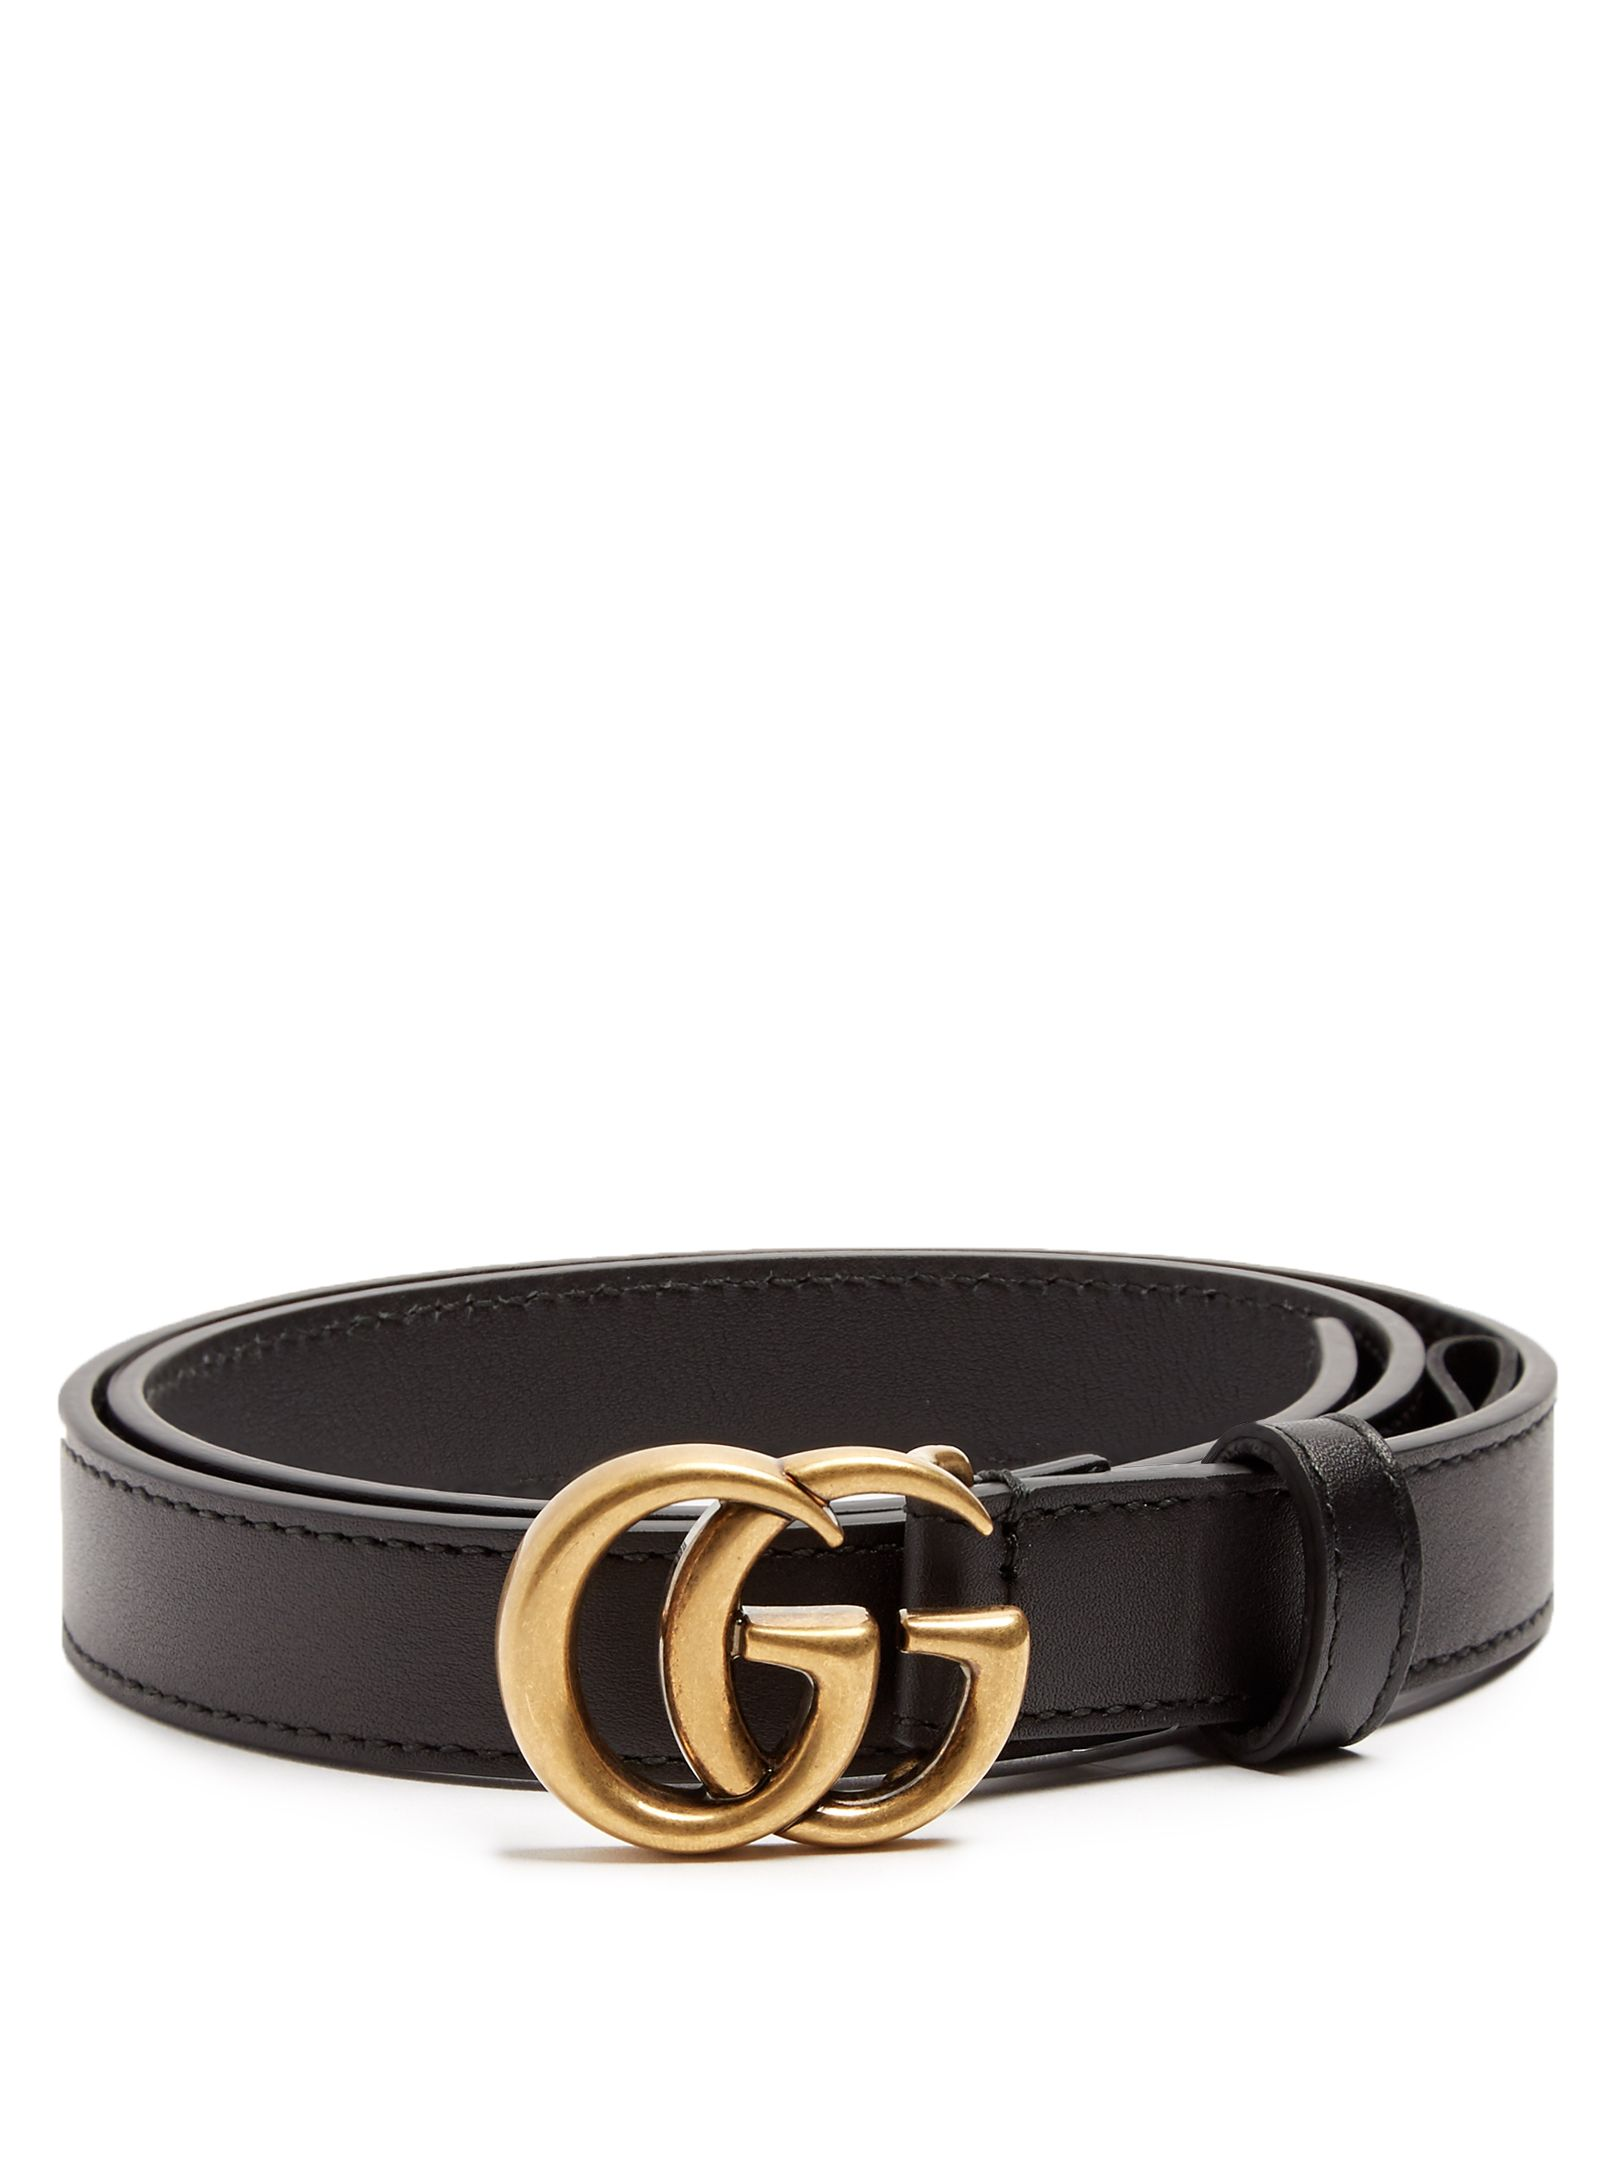 Click here to buy Gucci GG-logo 2cm leather belt at MATCHESFASHION ... e0760aa61217